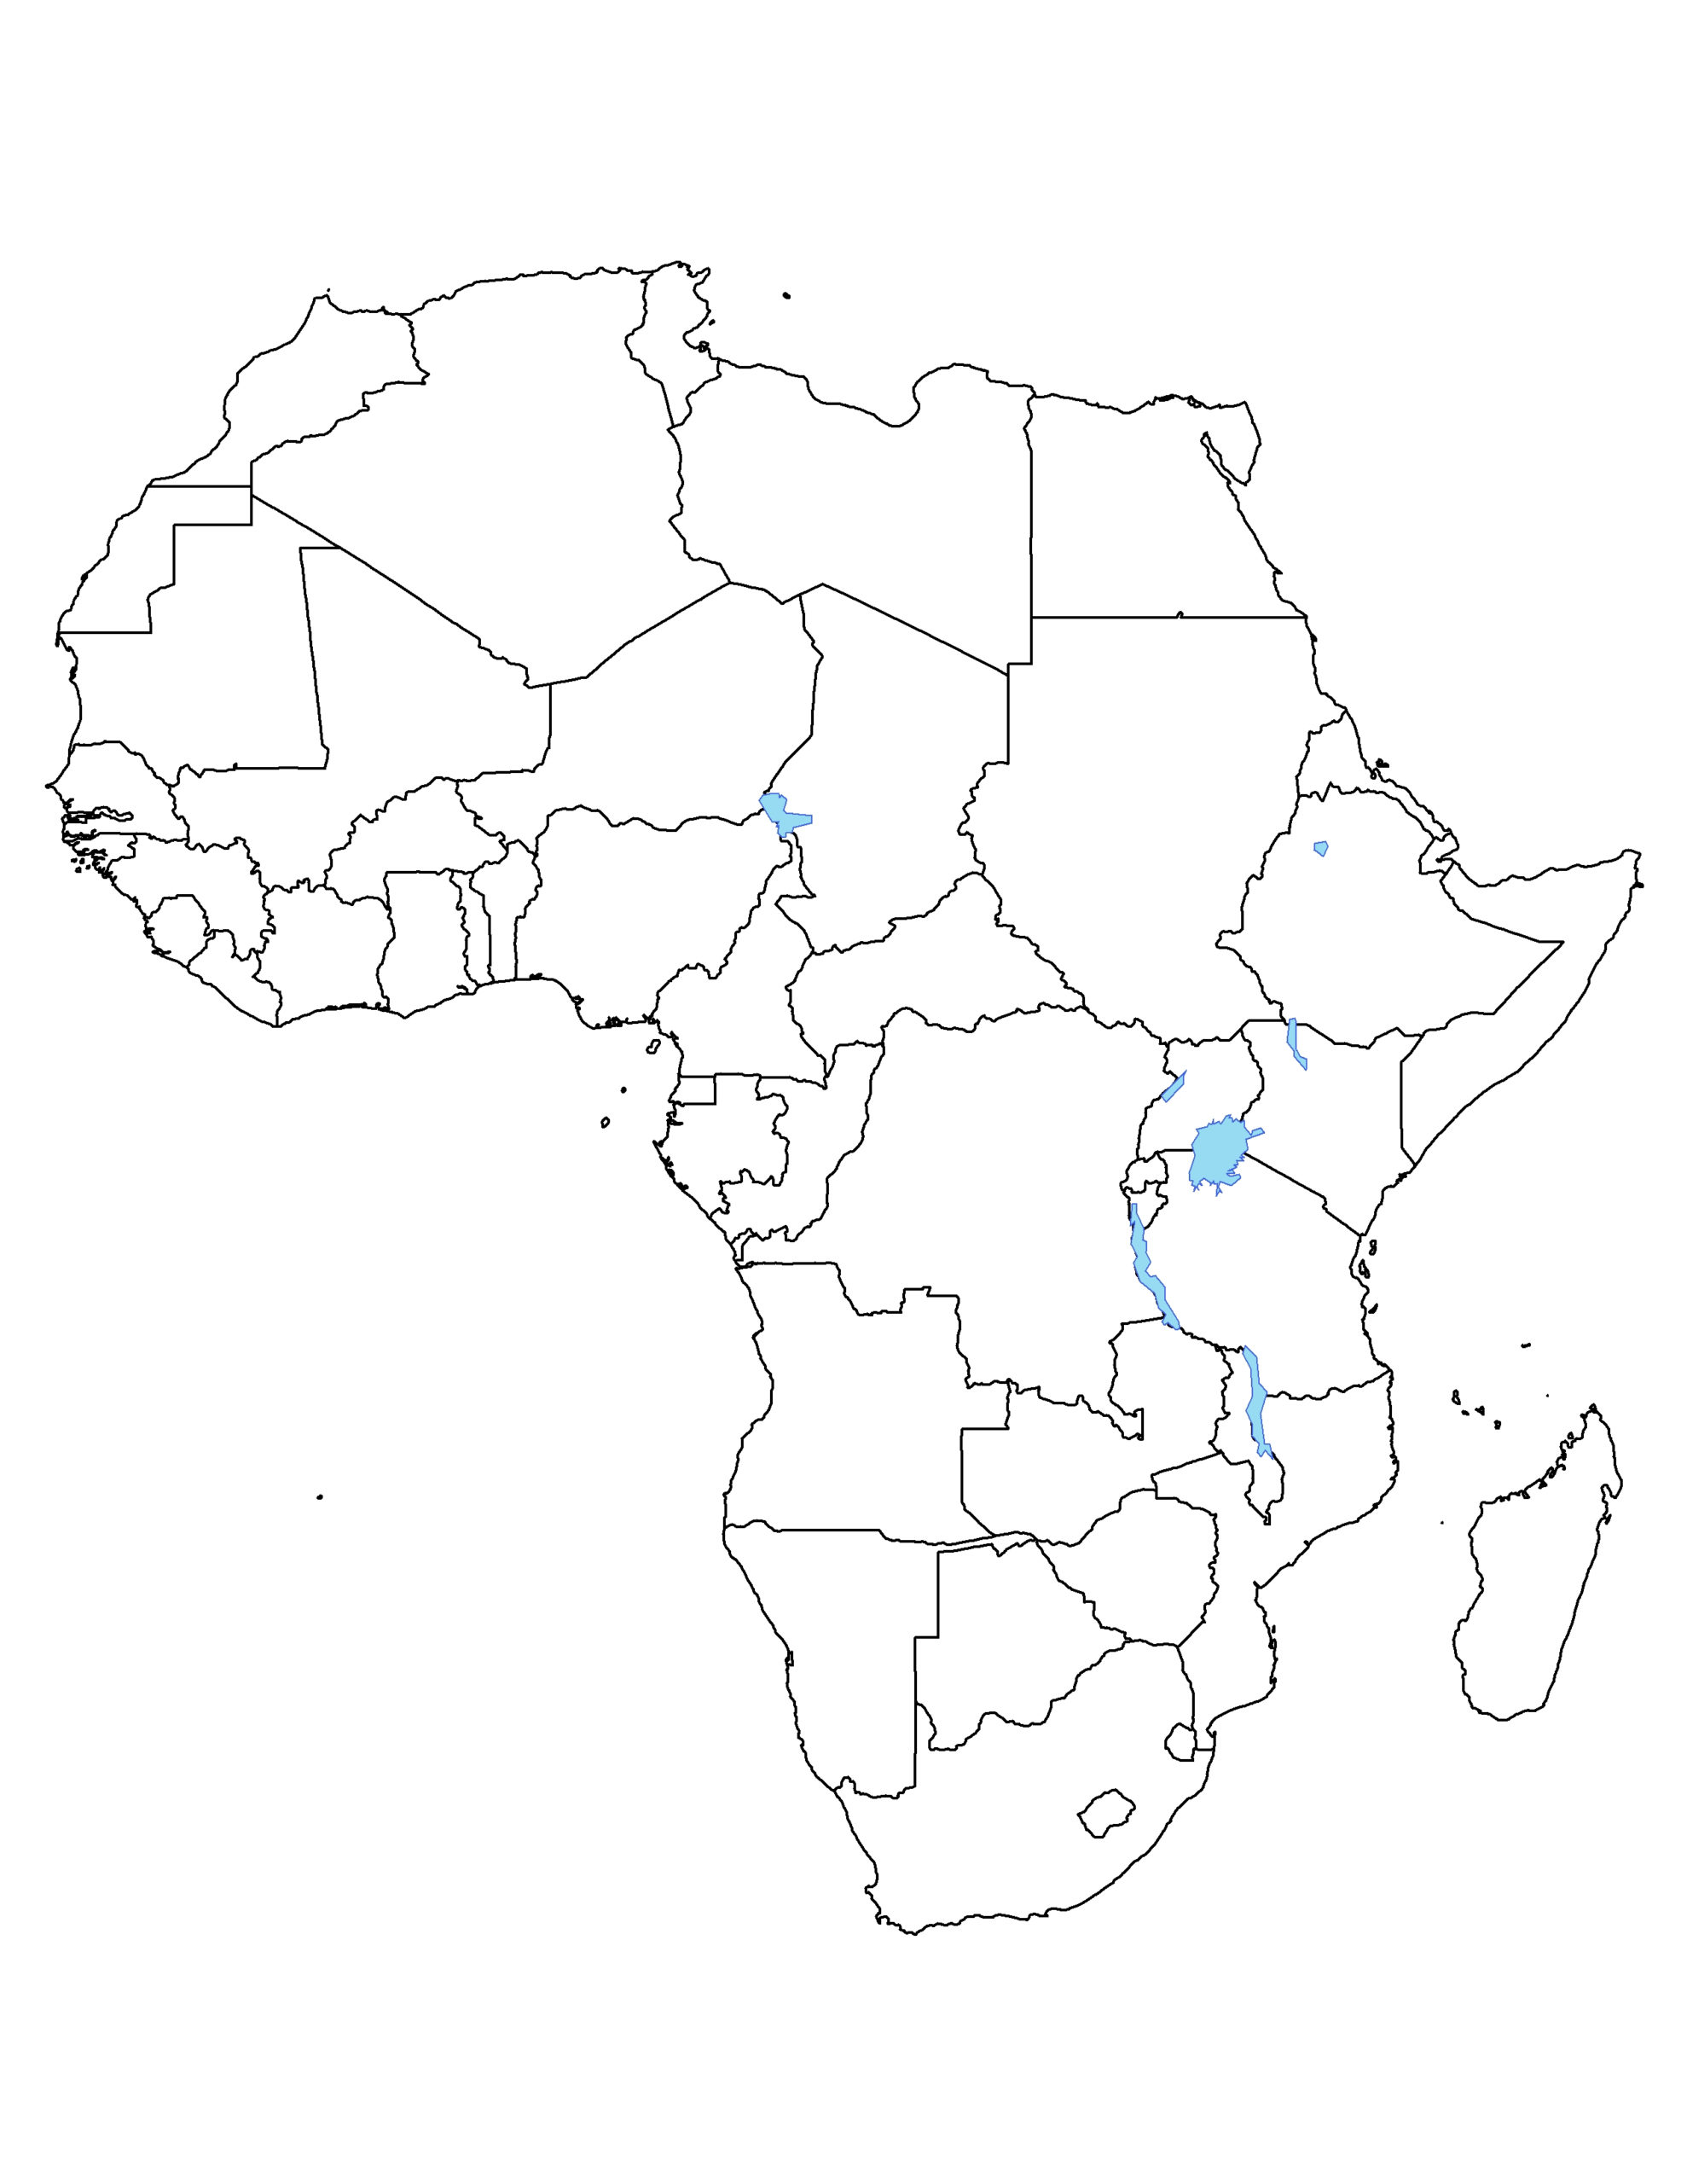 Africa Political Outline Map Full Size Gifex